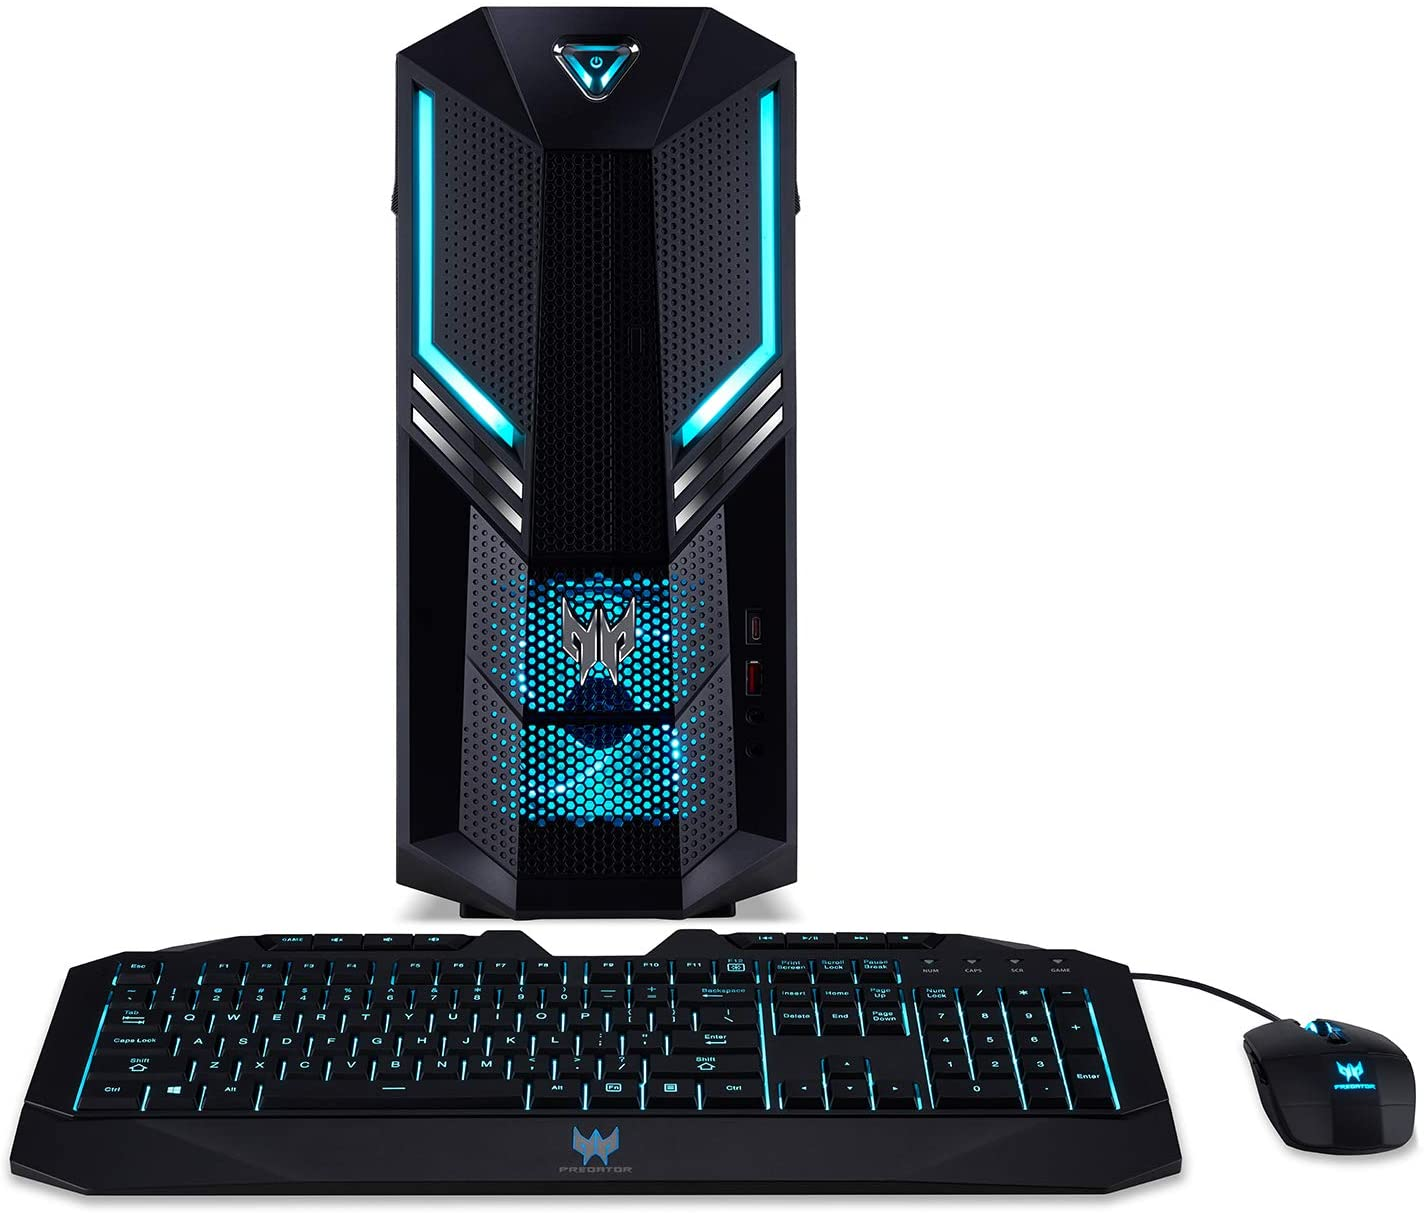 Acer Predator Orion 3000 Desktop, 9th Gen Intel Core i7-9700K, GeForce RTX 2080 8GB, 16GB DDR4, 256GB PCIe NVMe SSD, 1TB HDD, Win 10, PO3-600-UR20